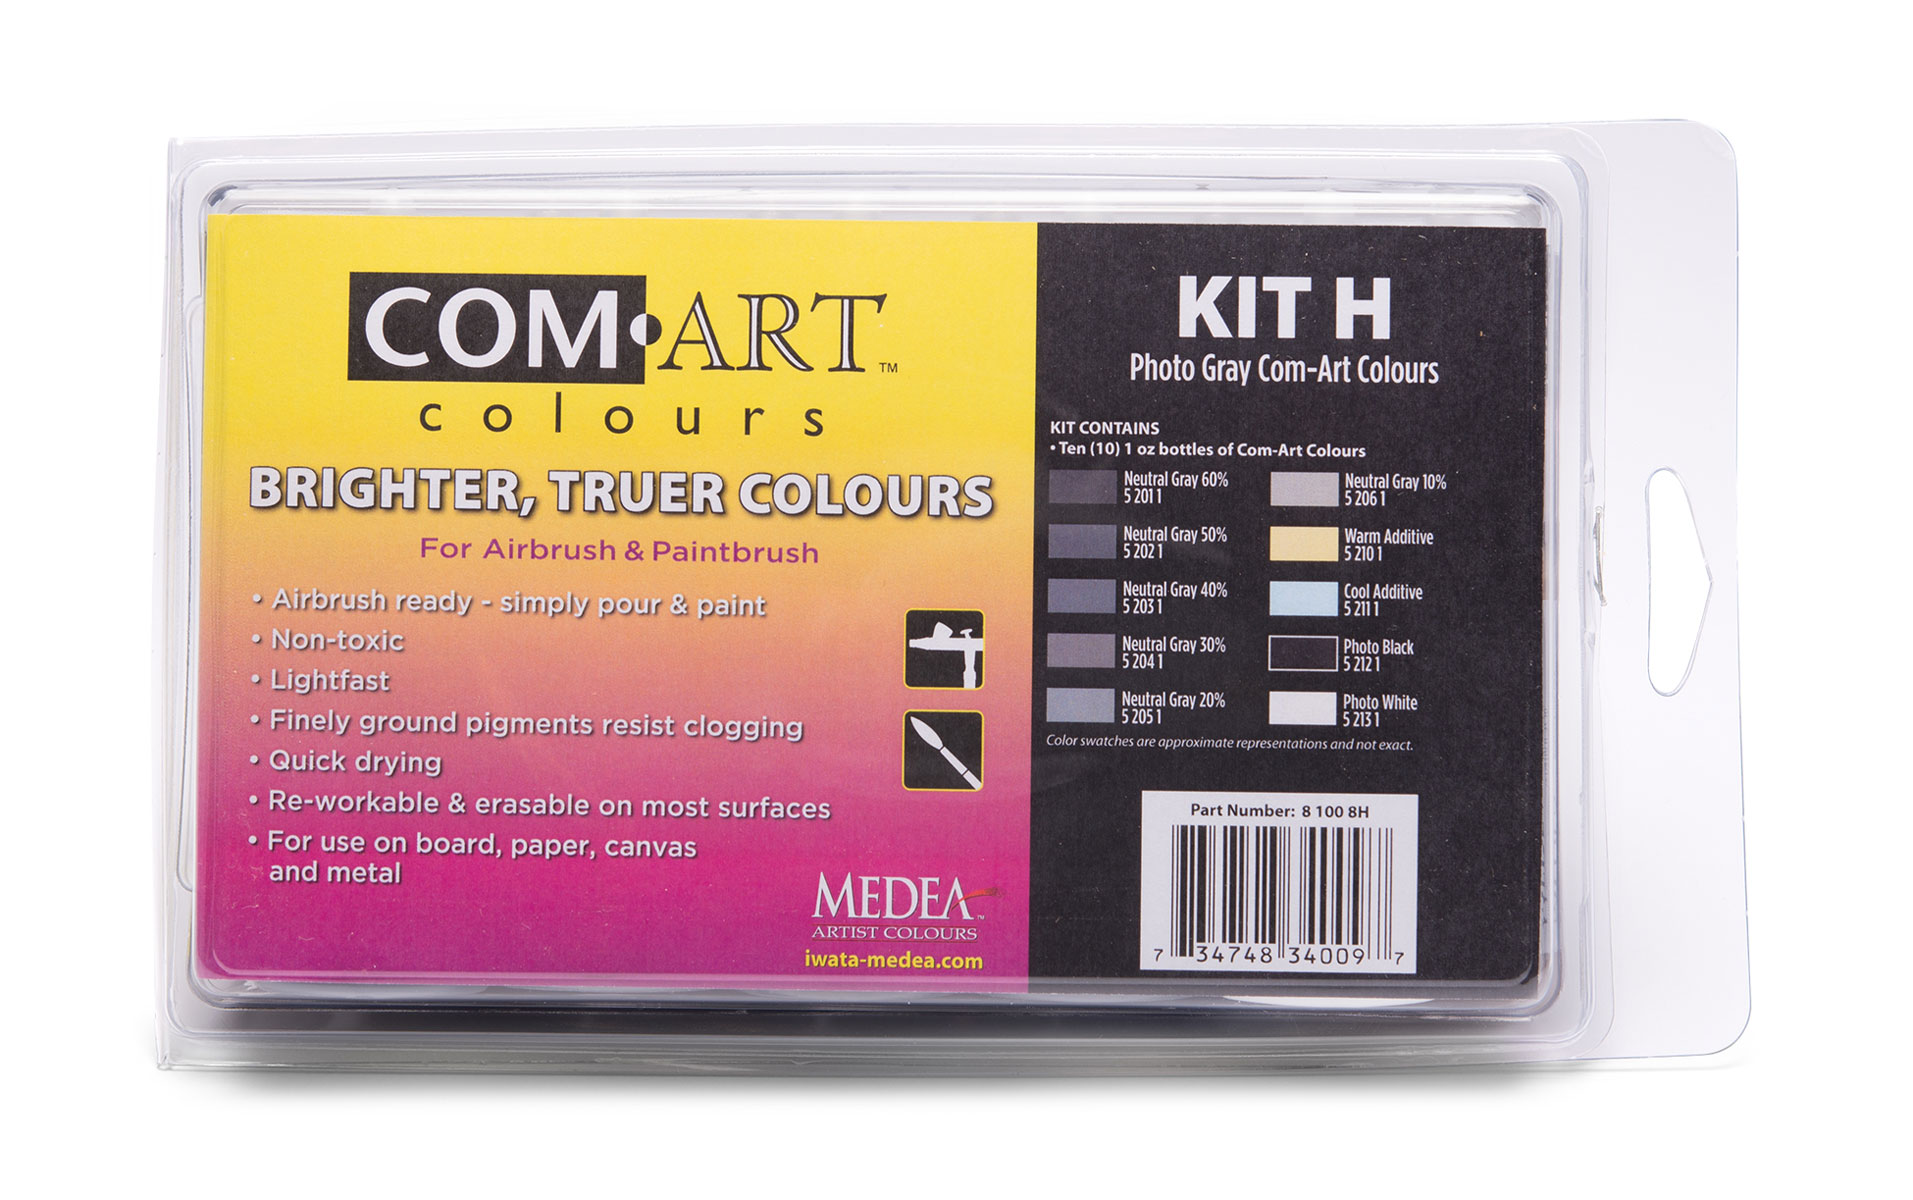 Medea Comart Photo Gray Combo Kit H